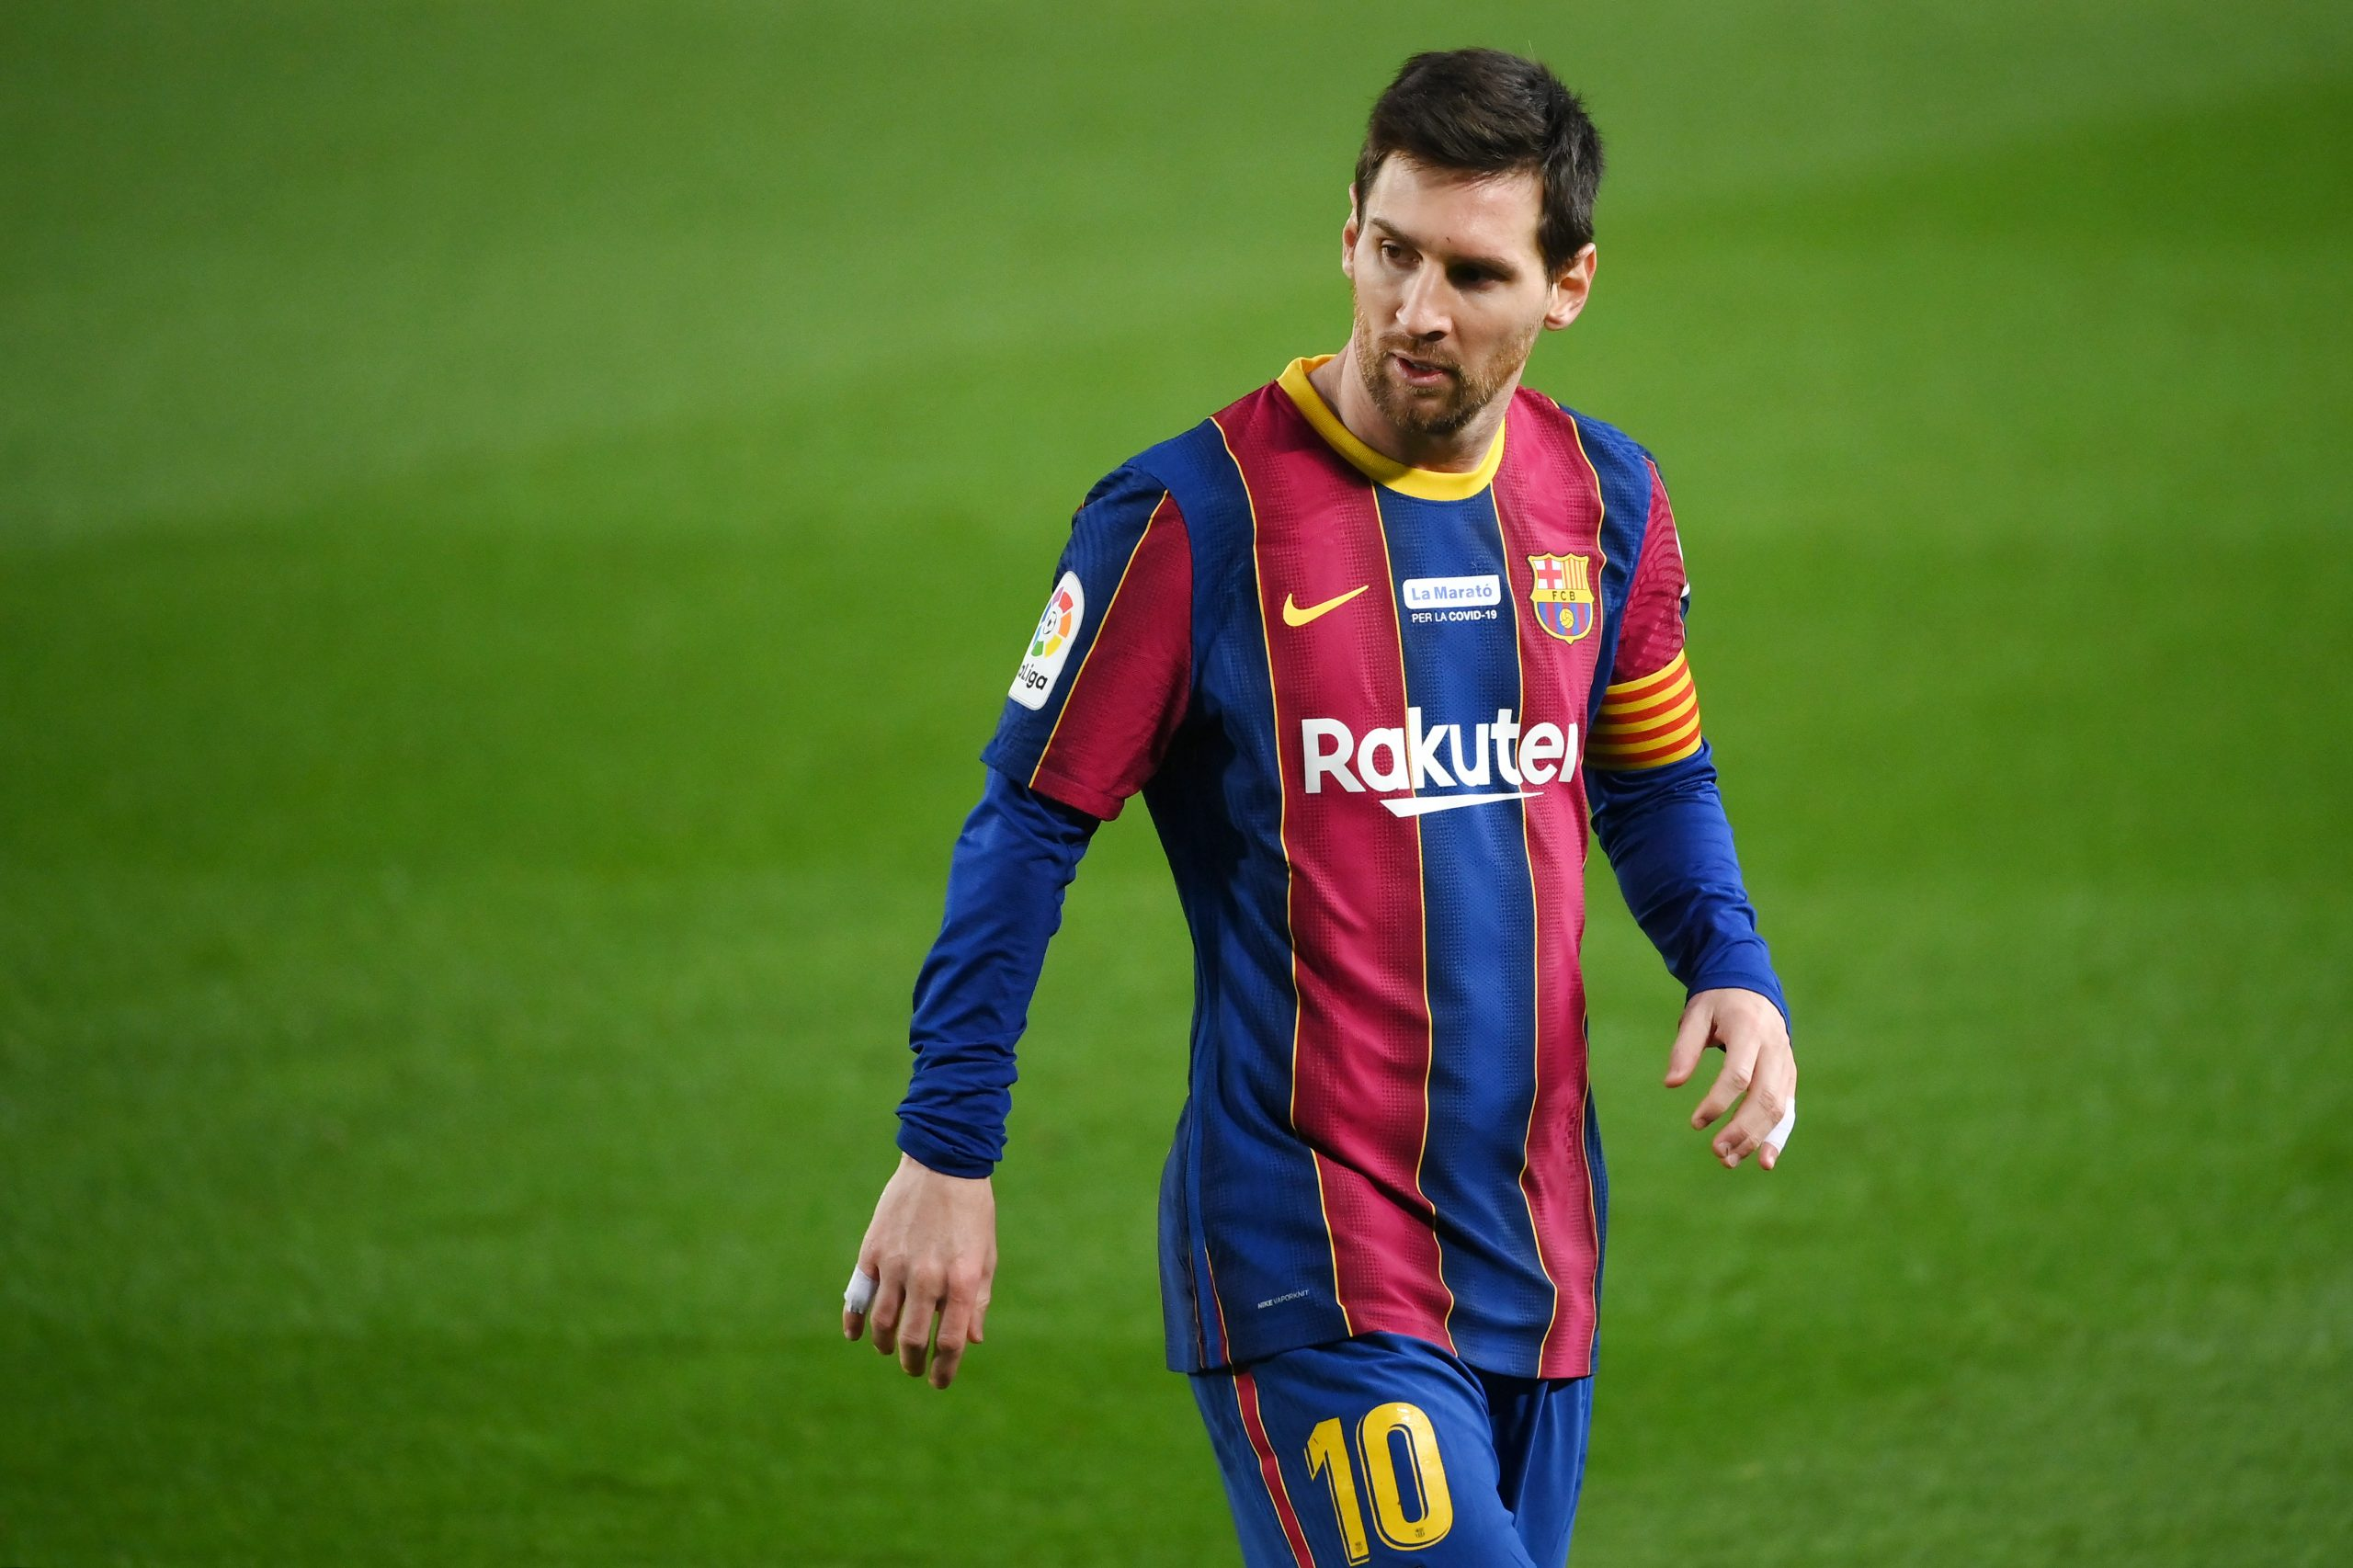 PSG's Pochettino guarded over Messi move